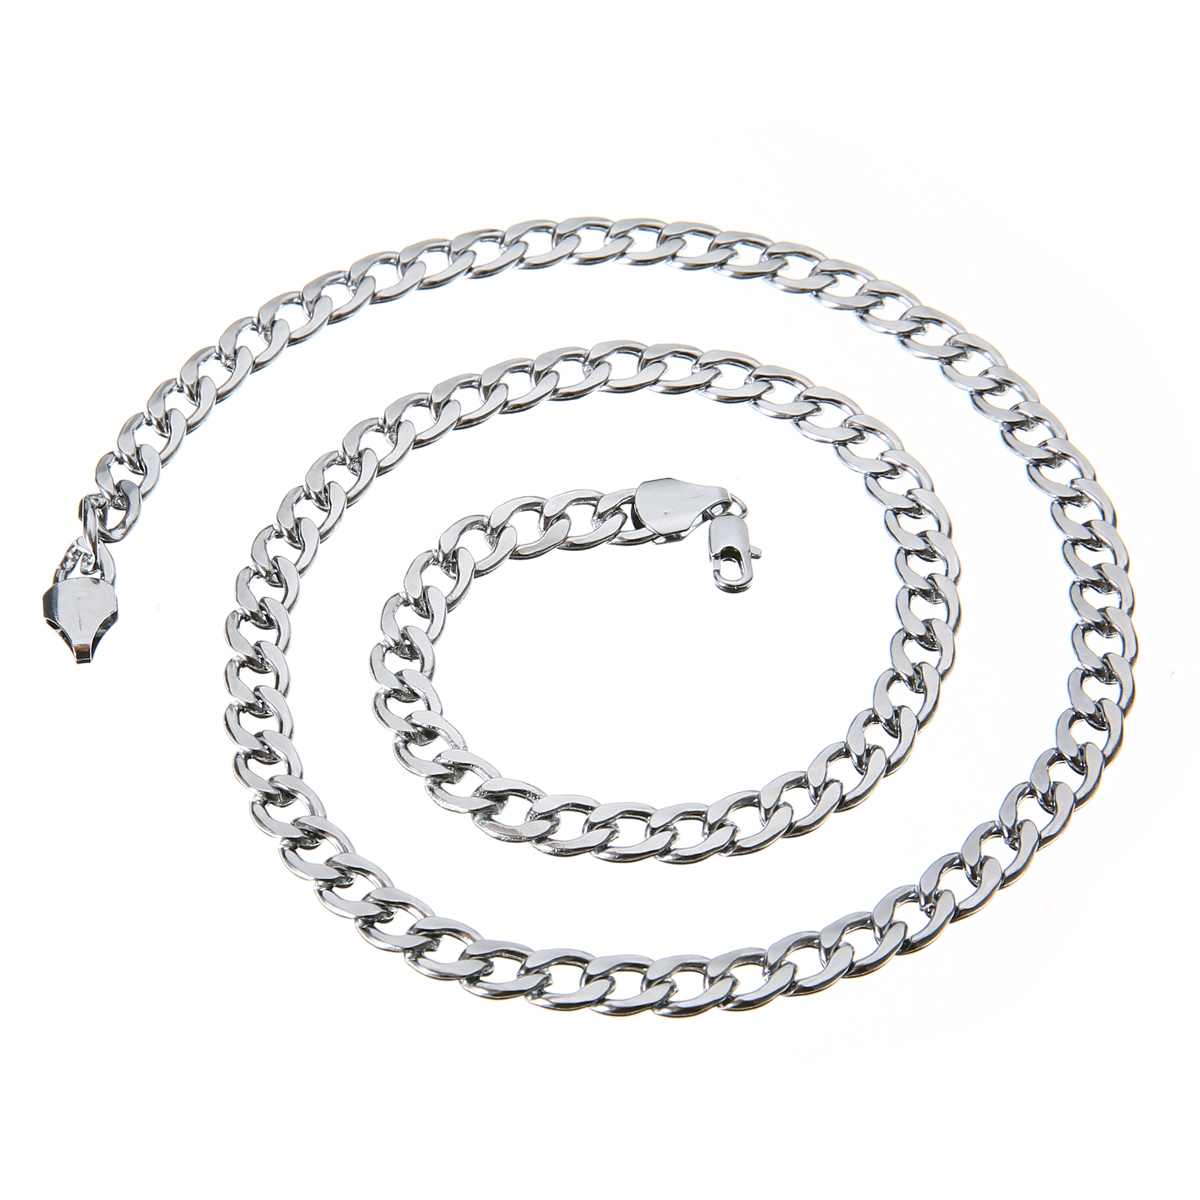 l necklace best chain link blue photo photos maize silver